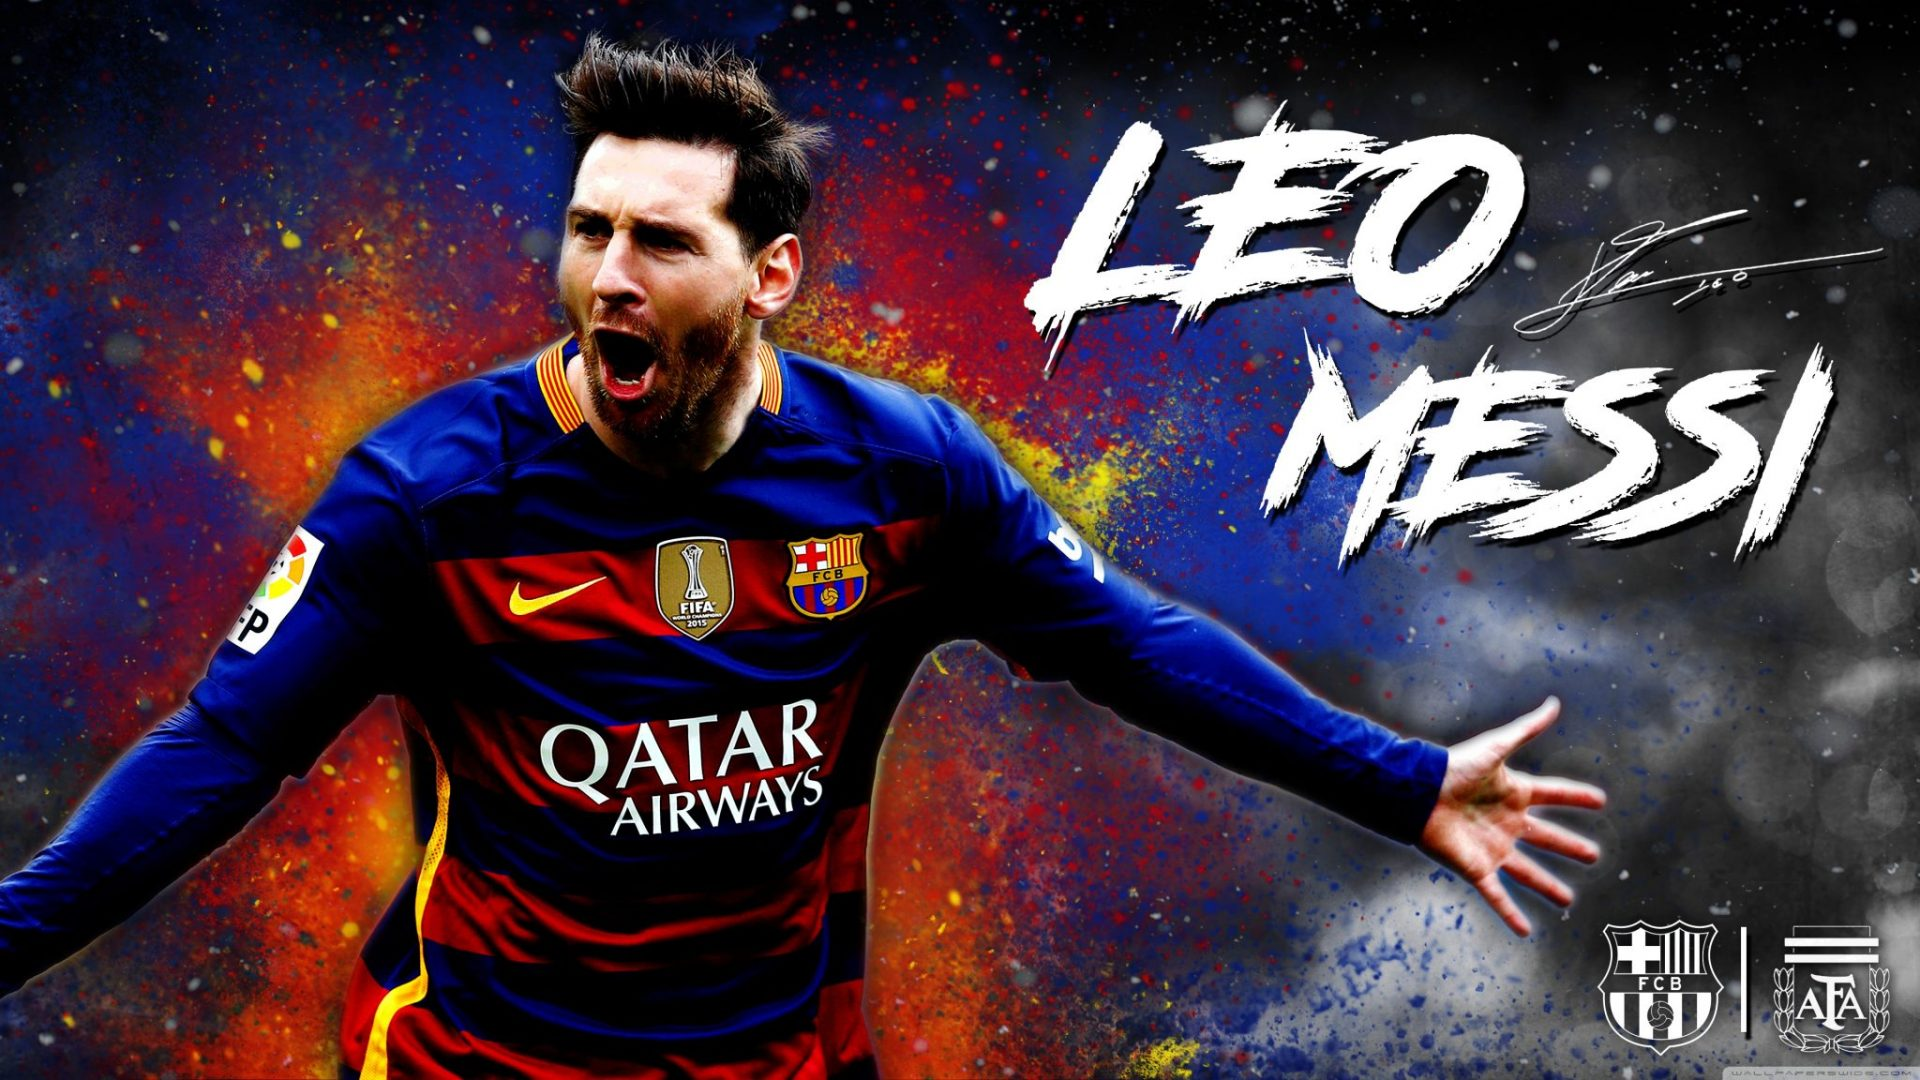 Lionel Messi Wiki Bio Age Family Career Lifestyle